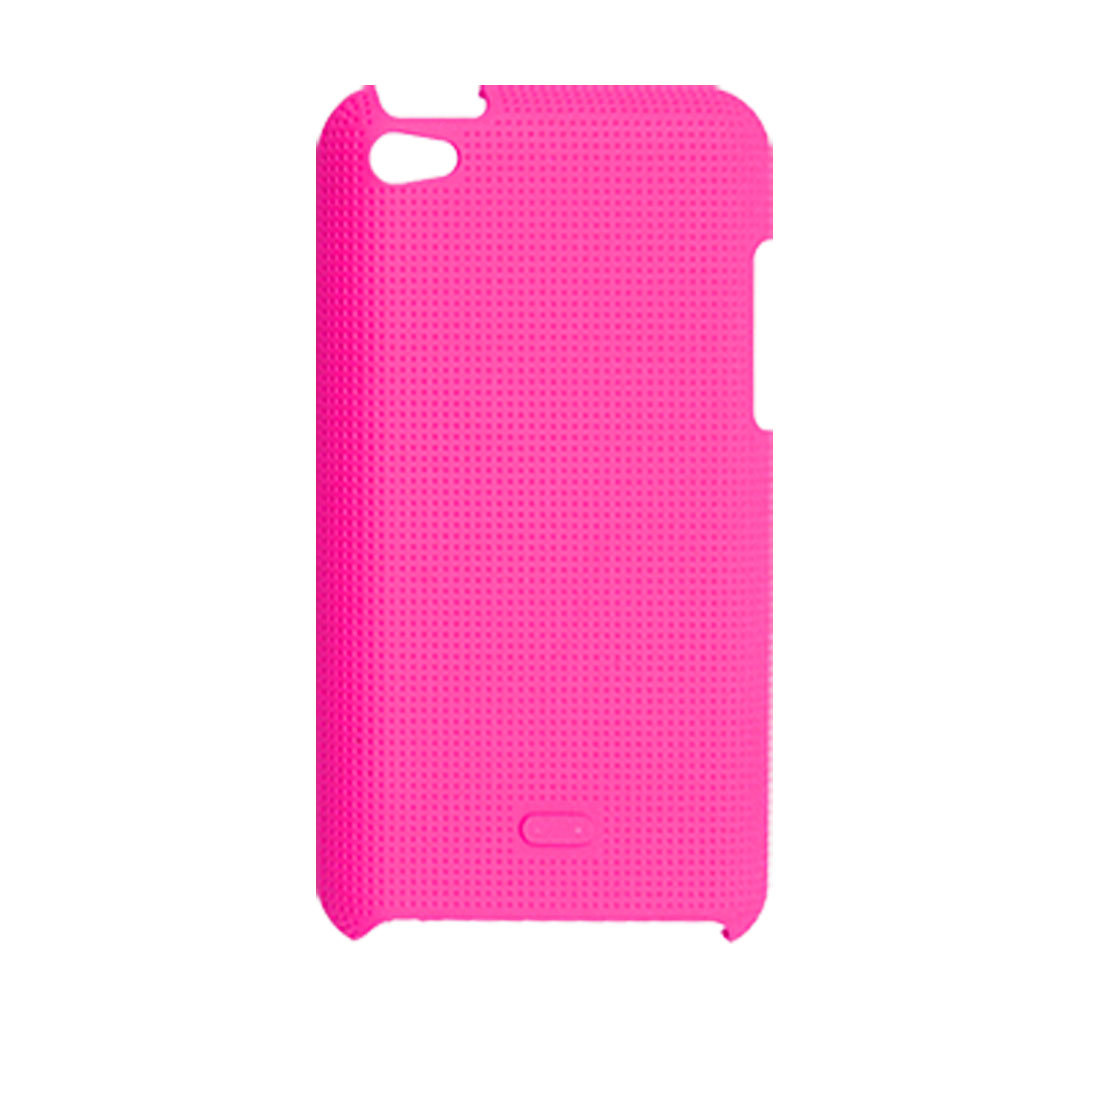 Fuchsia Nonslip Back Case Protector for iPod Touch 4G